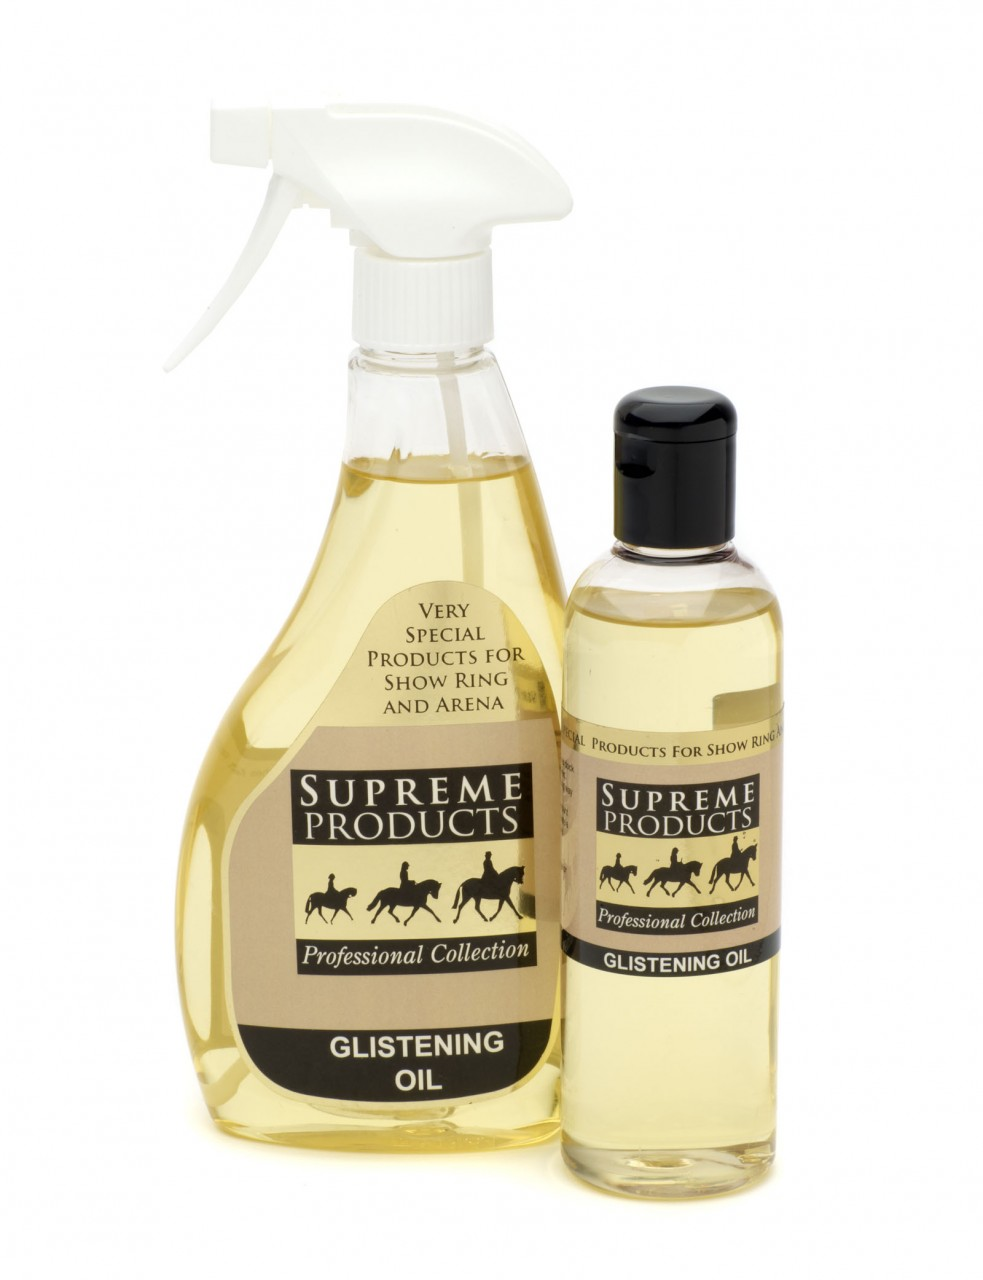 Supreme Products Glistening Oil for Horses